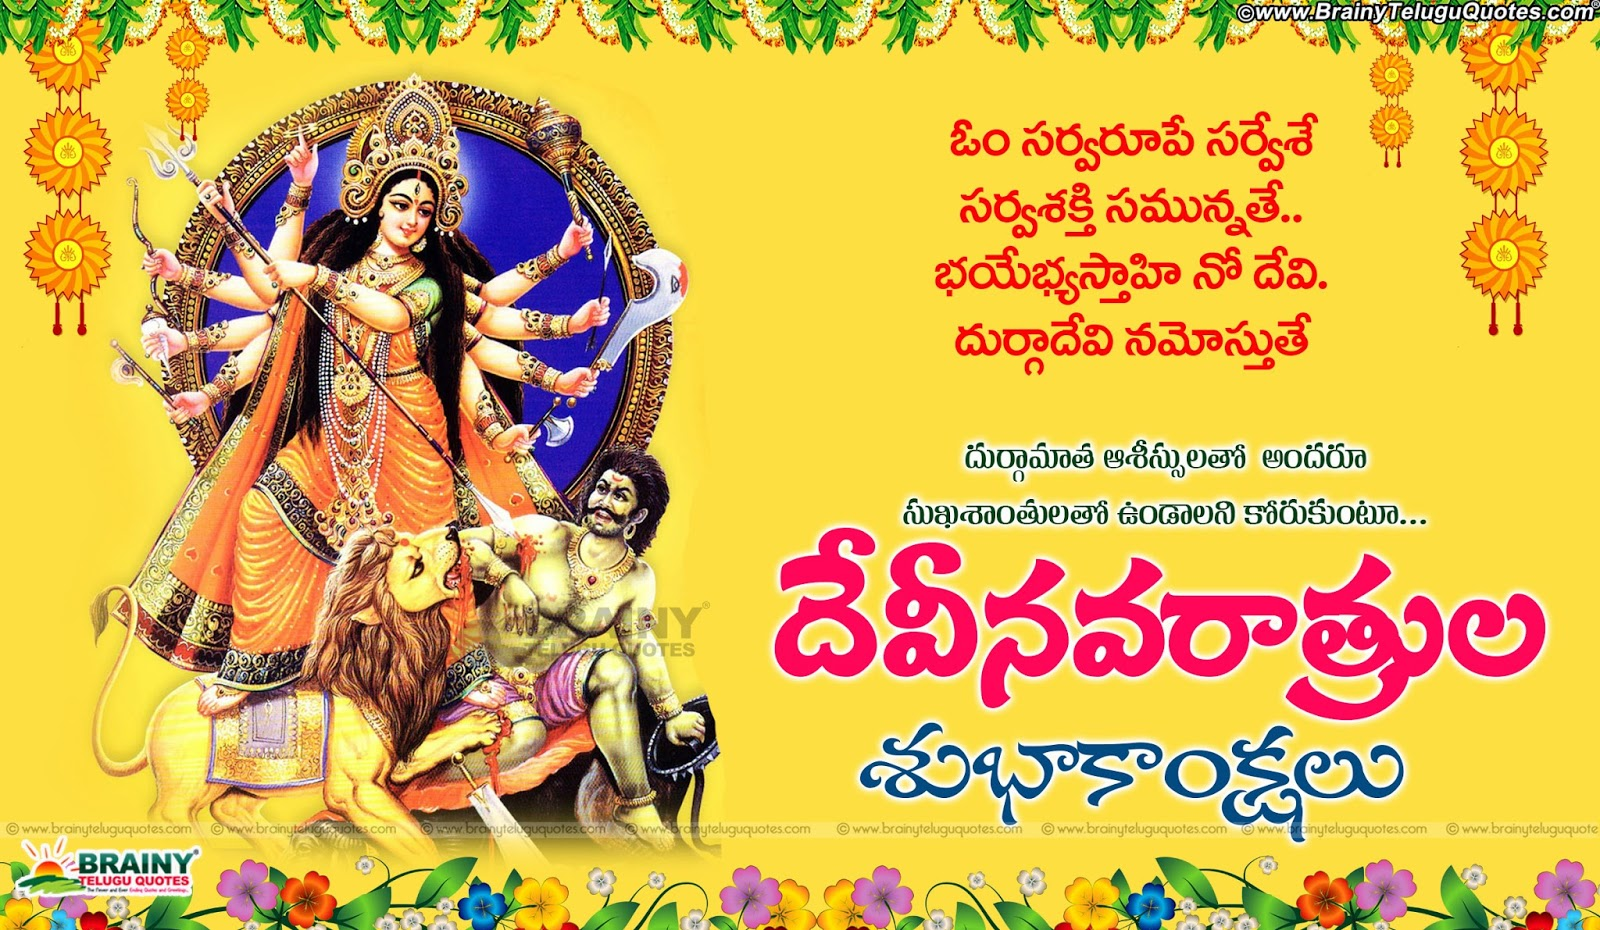 Happy vijayadasami dasara wishes quotes greetings in telugu here is durga devi ammavari alamkaramulu images happy navratri greetings in telugu language devinavaratri kristyandbryce Choice Image